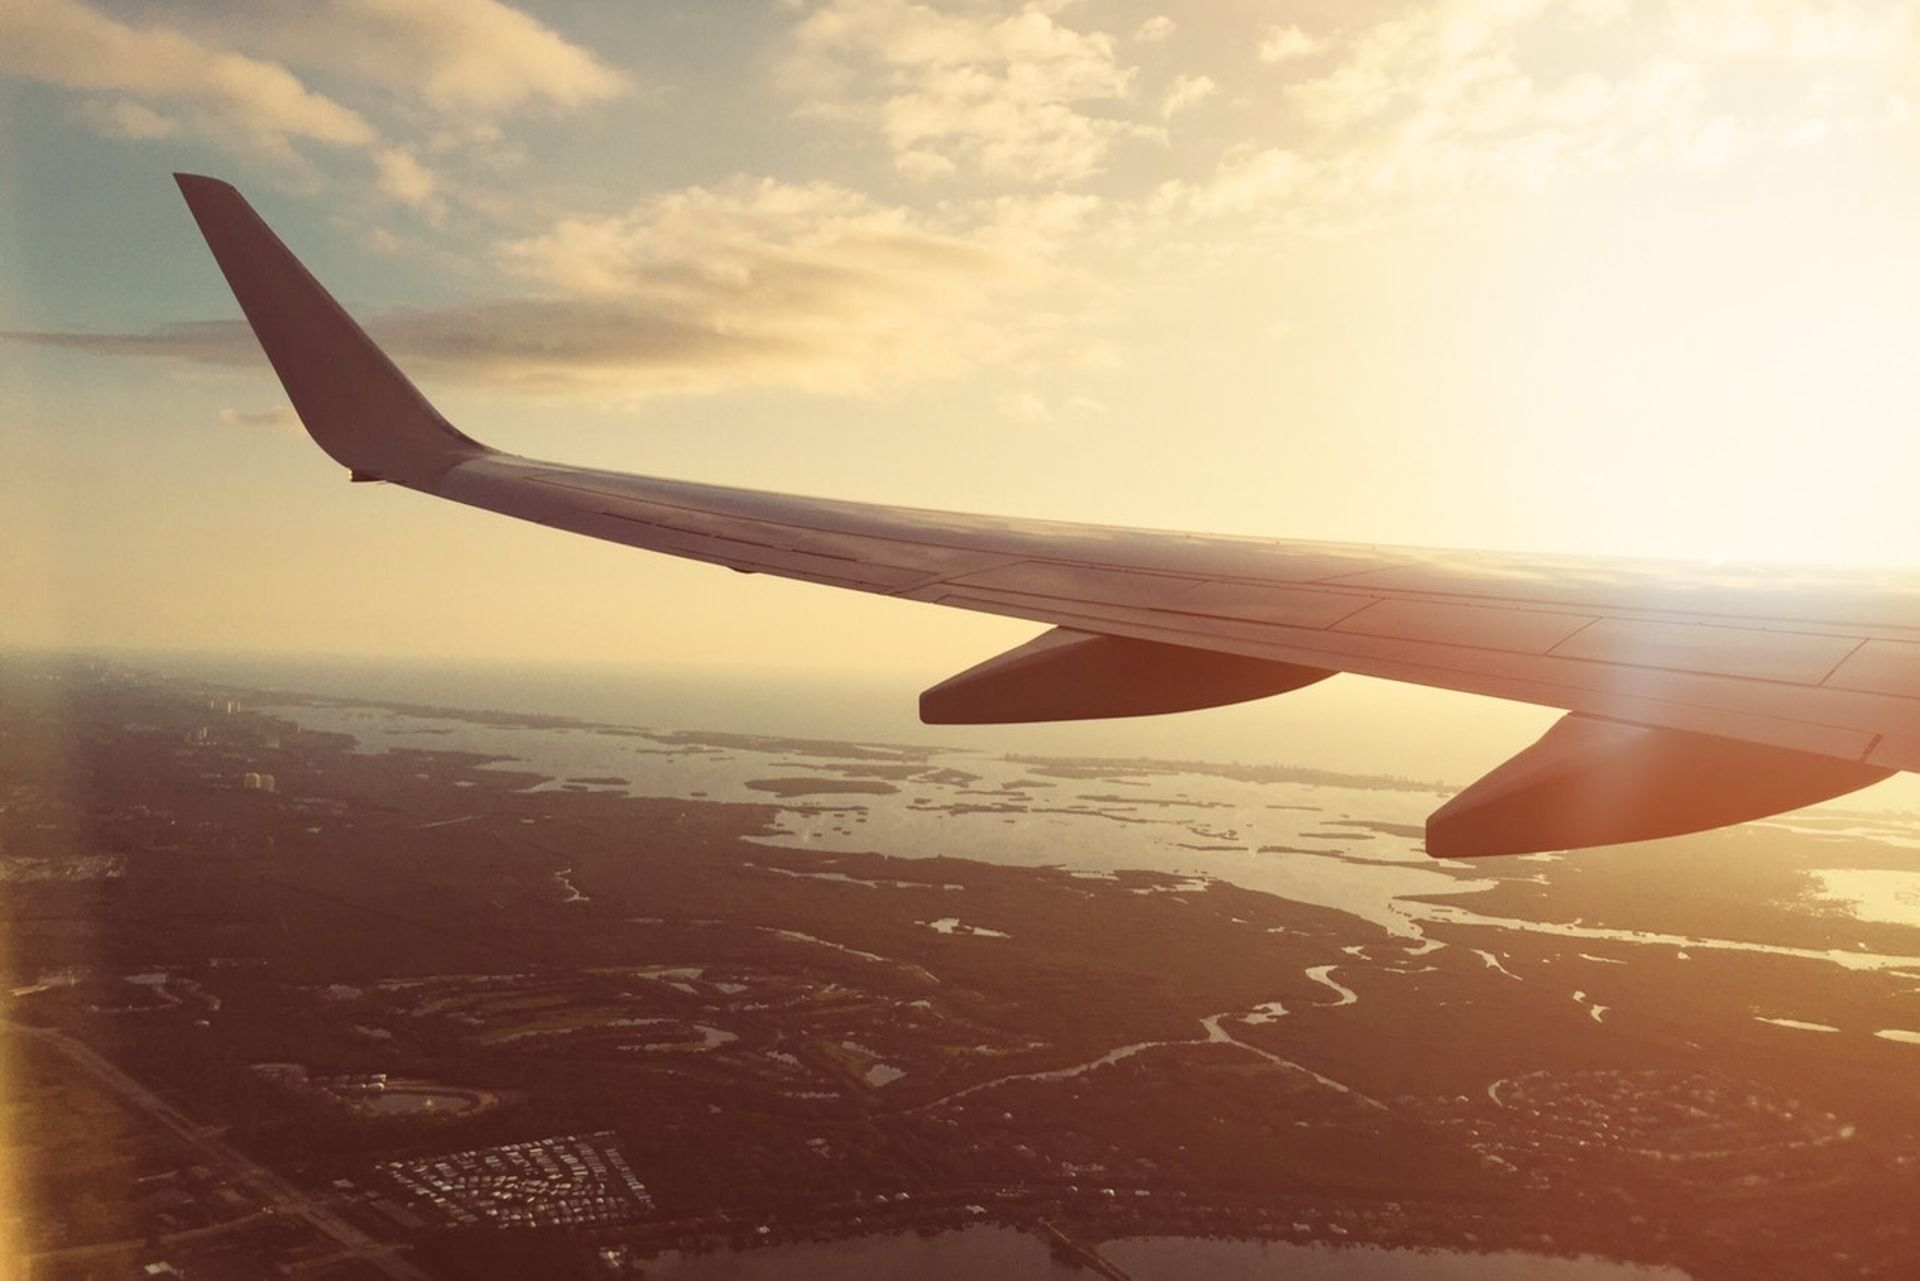 Tips to Keep Your Holiday Travel Stress-Free